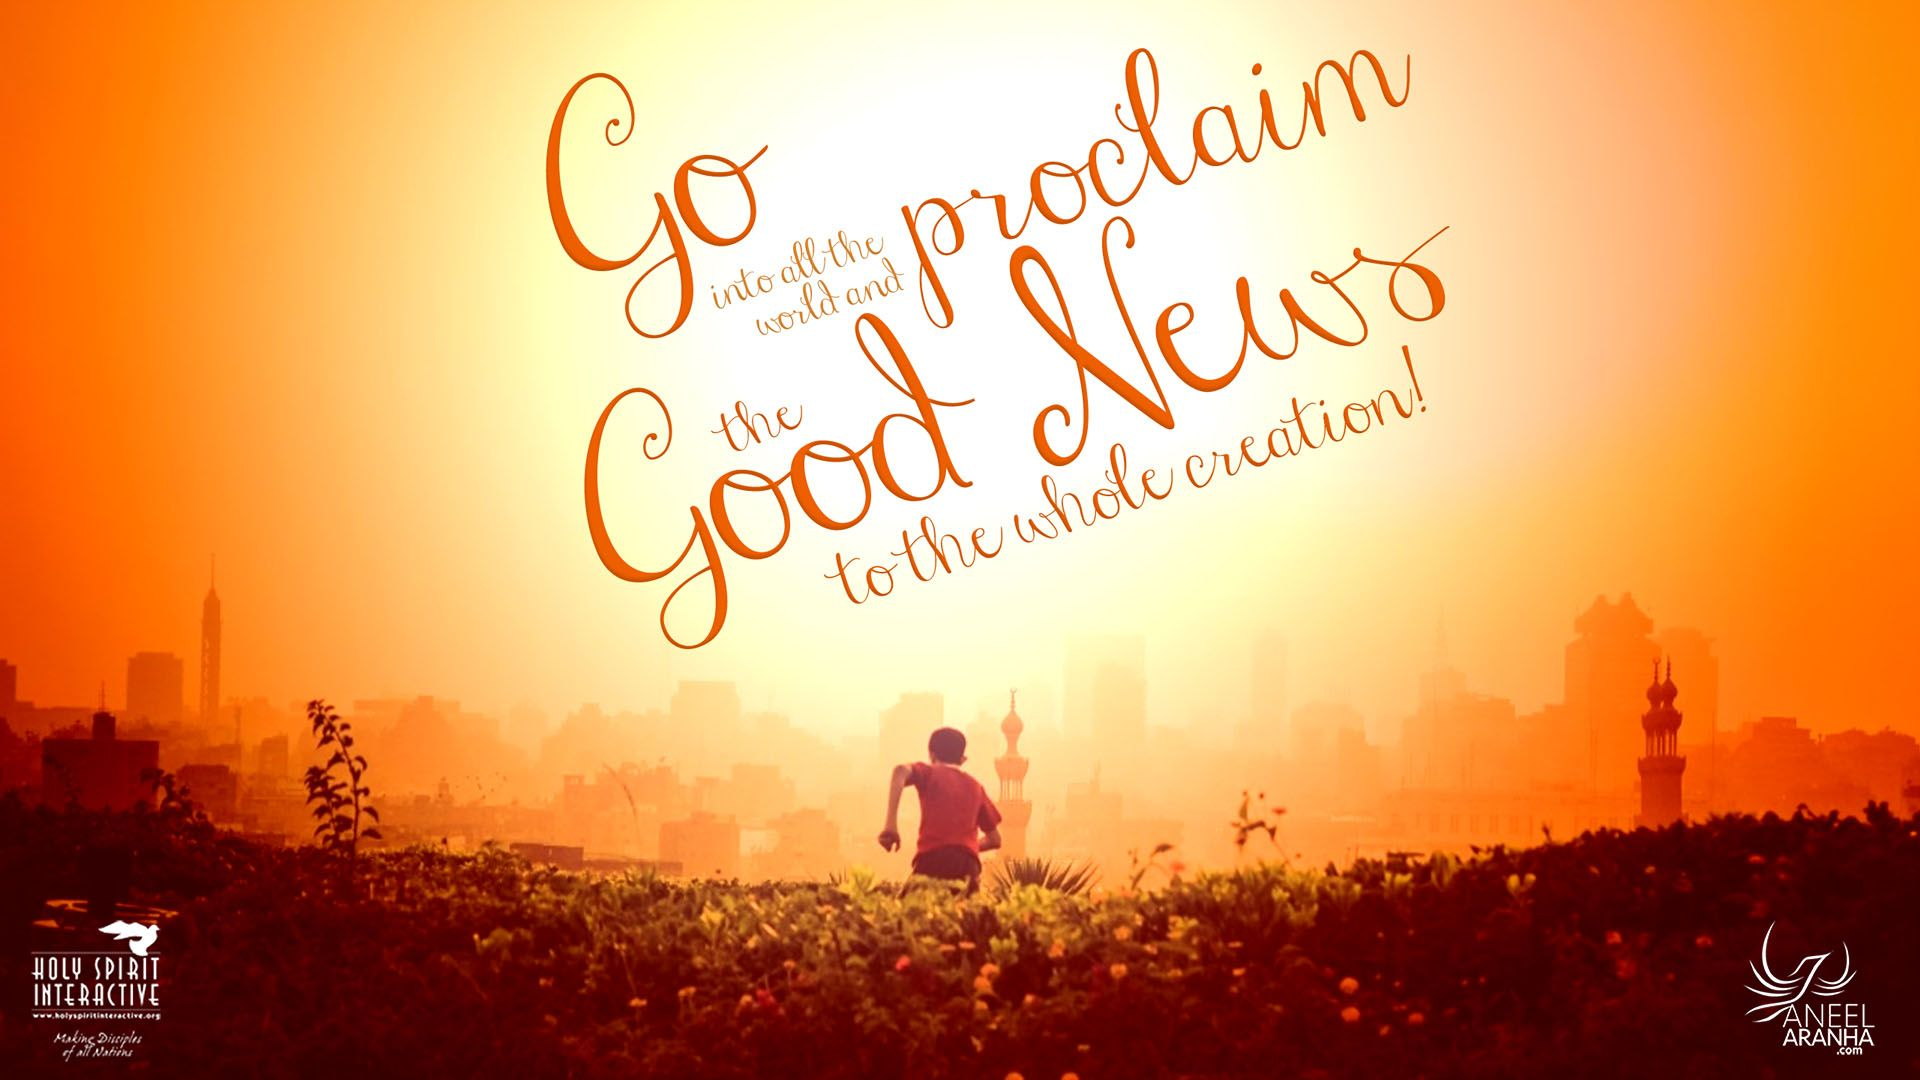 Go into all the world and proclaim the good news to the whole creation!  -Mark 16:15 (NRSVCE) | Word of god, Words, God